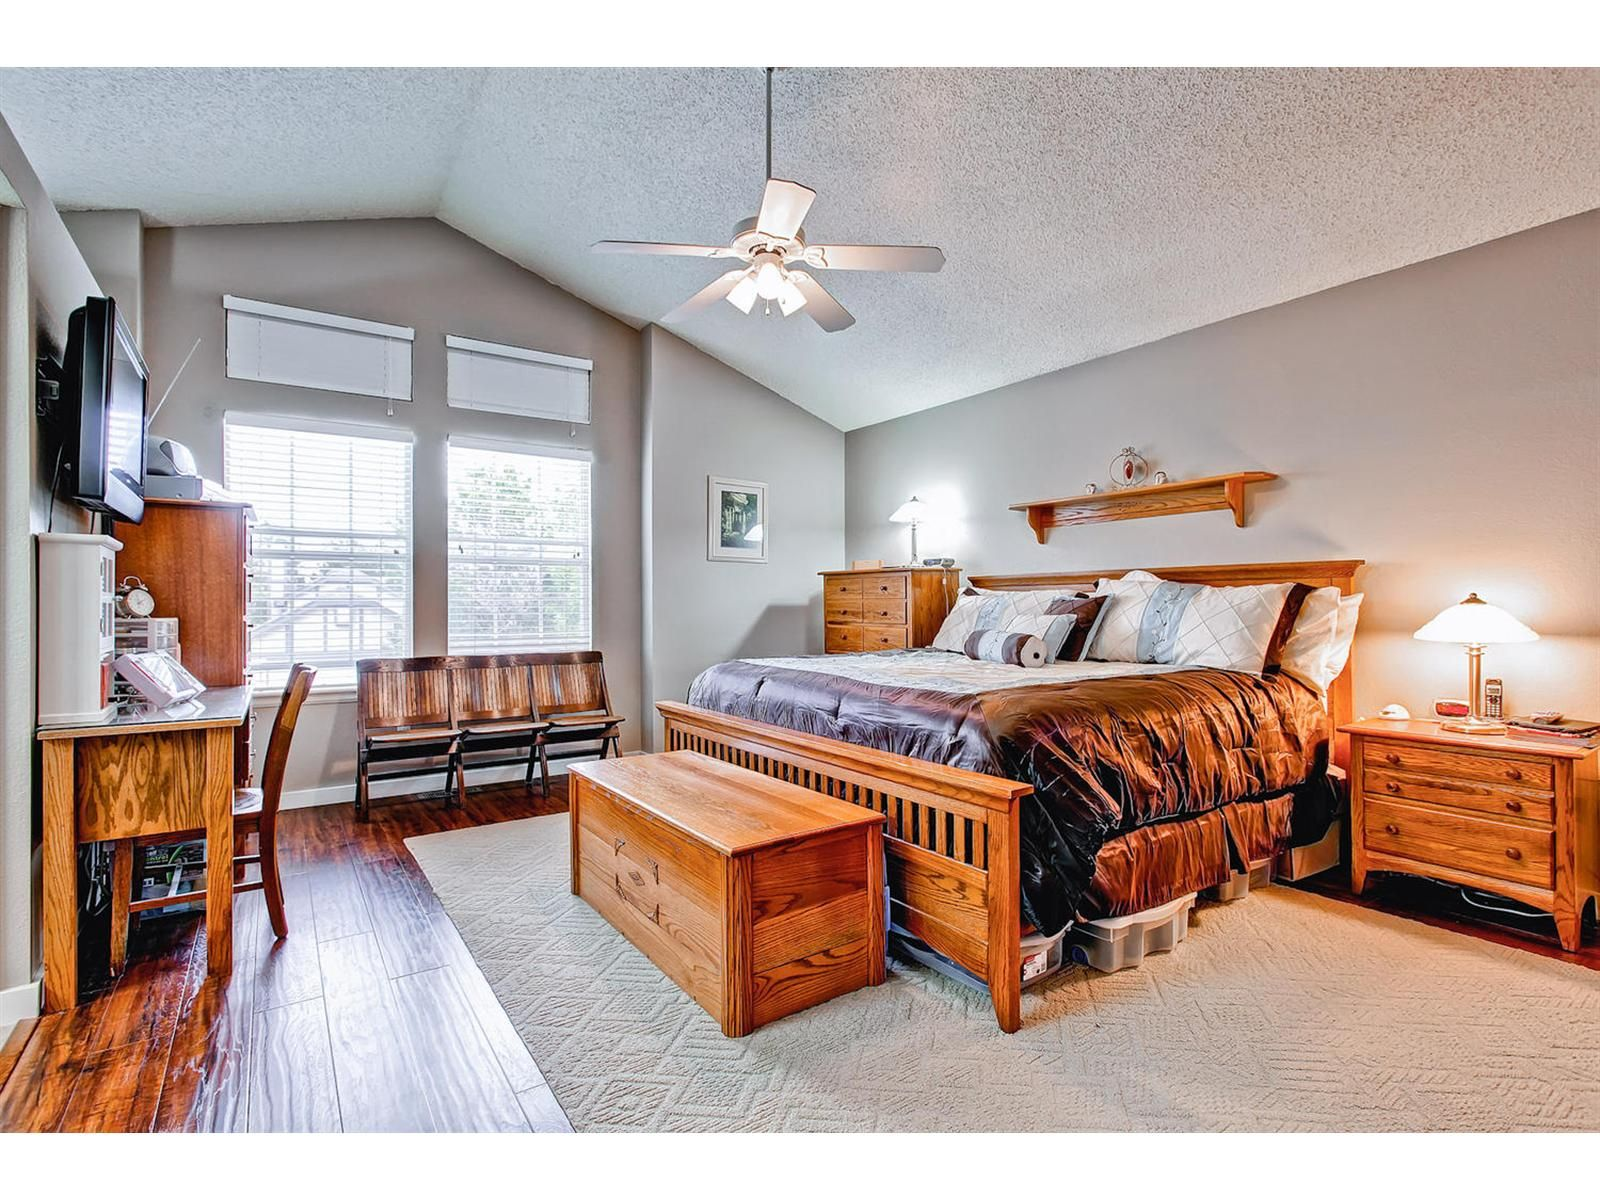 Large master bedroom with vaulted ceilings, natural light